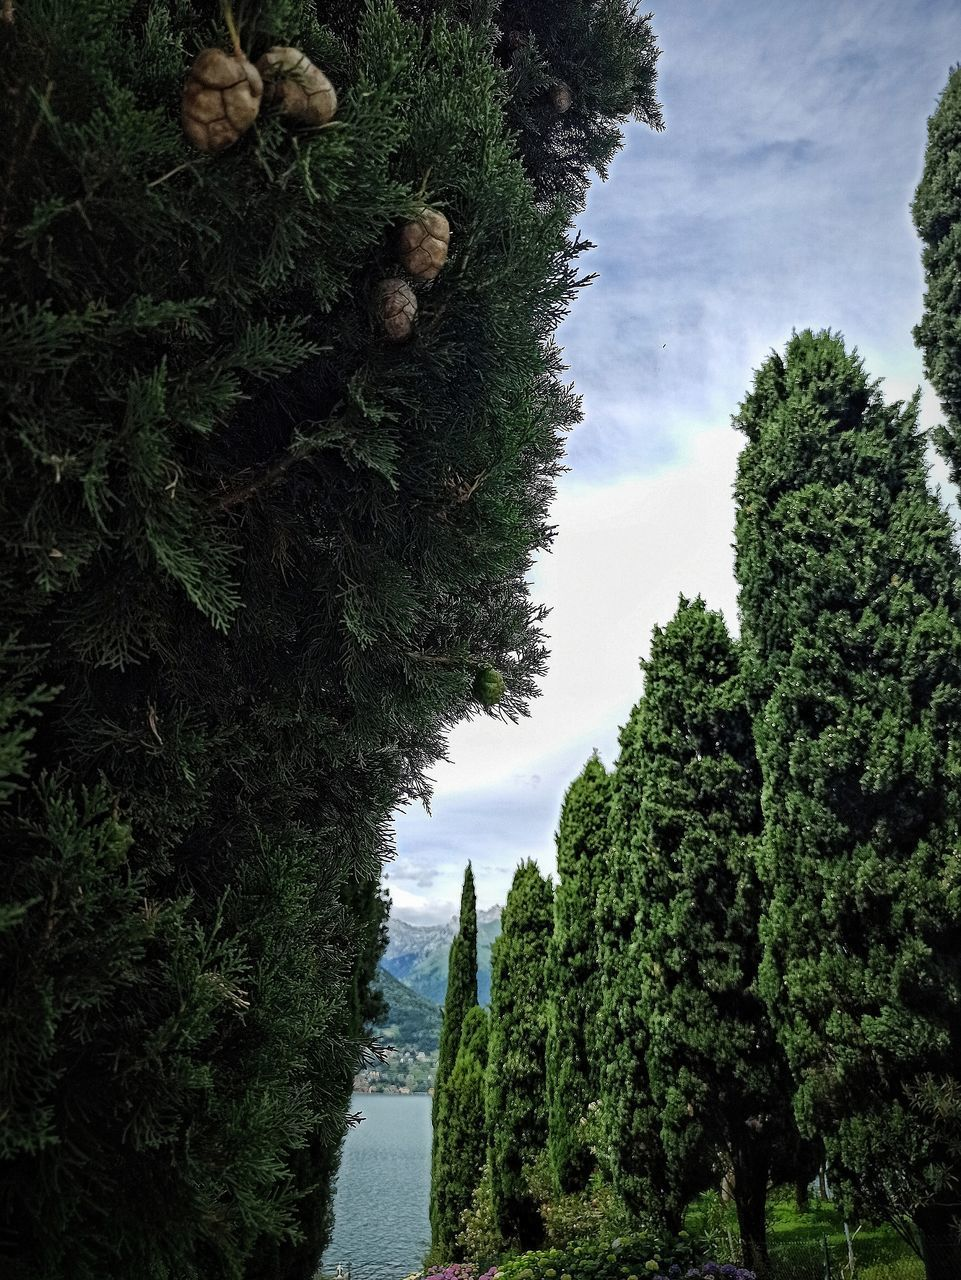 TREES AND PLANTS GROWING AGAINST SKY